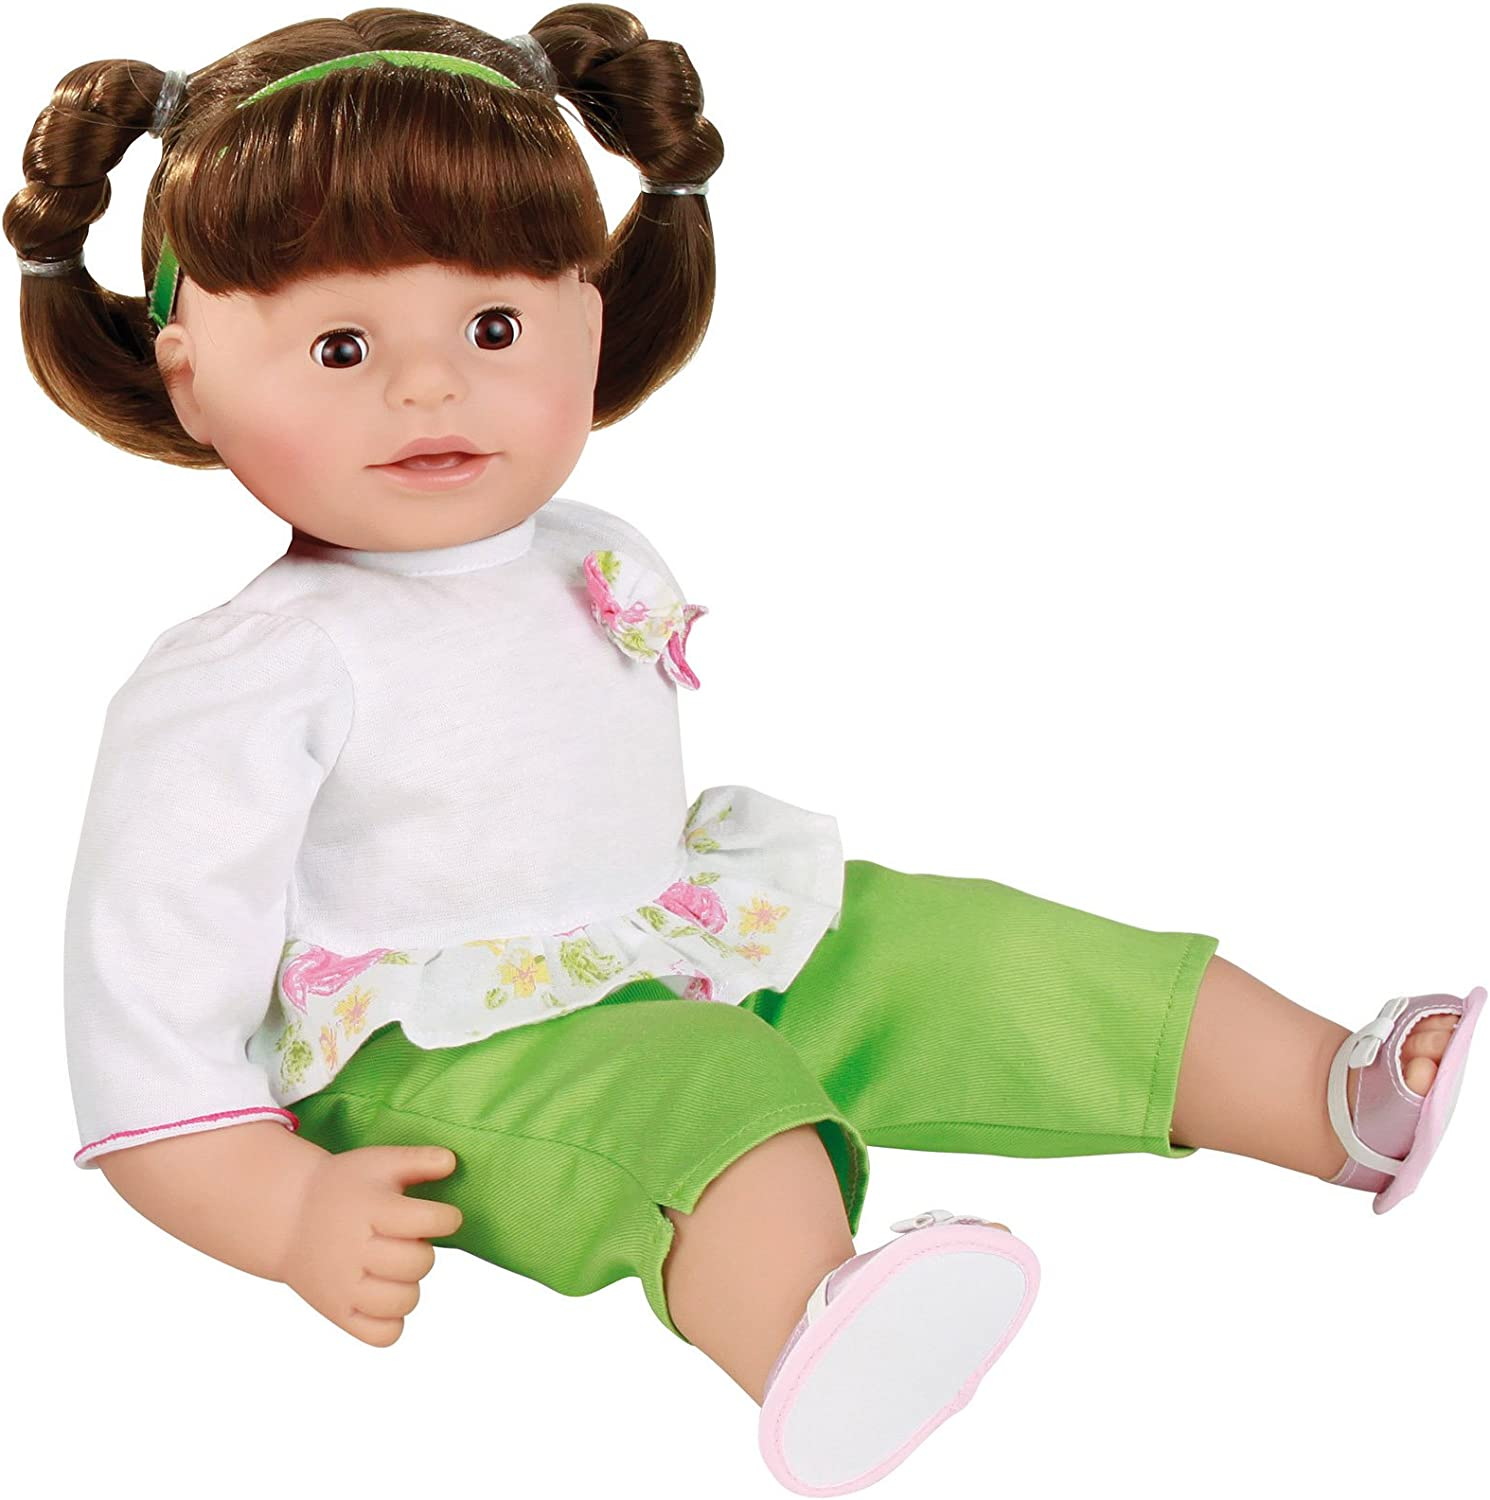 Toys R Us You /& Me Toddler Girl Baby Doll Brunette Hair Braid and Brown Eyes